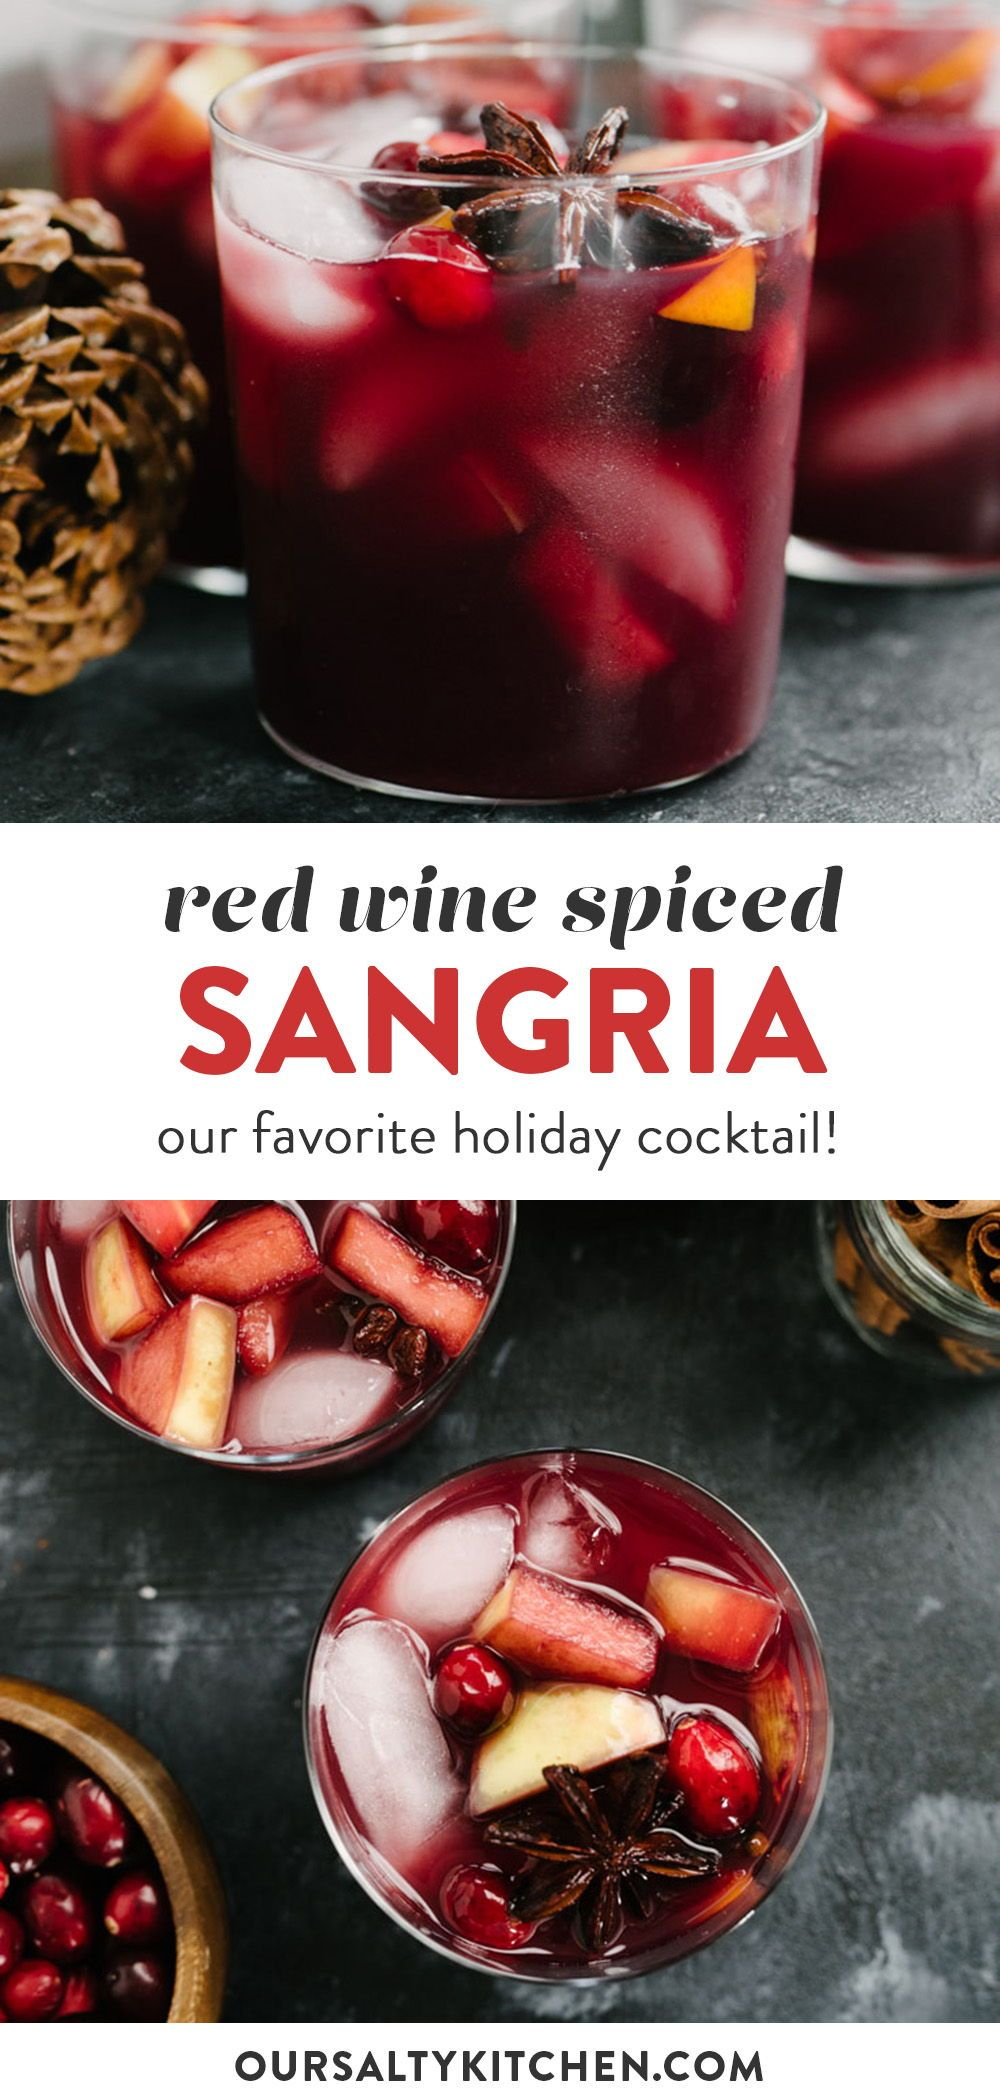 Spiced Red Wine Holiday Sangria Recipe In 2020 Holiday Sangria Holiday Sangria Recipes Christmas Cocktails Recipes